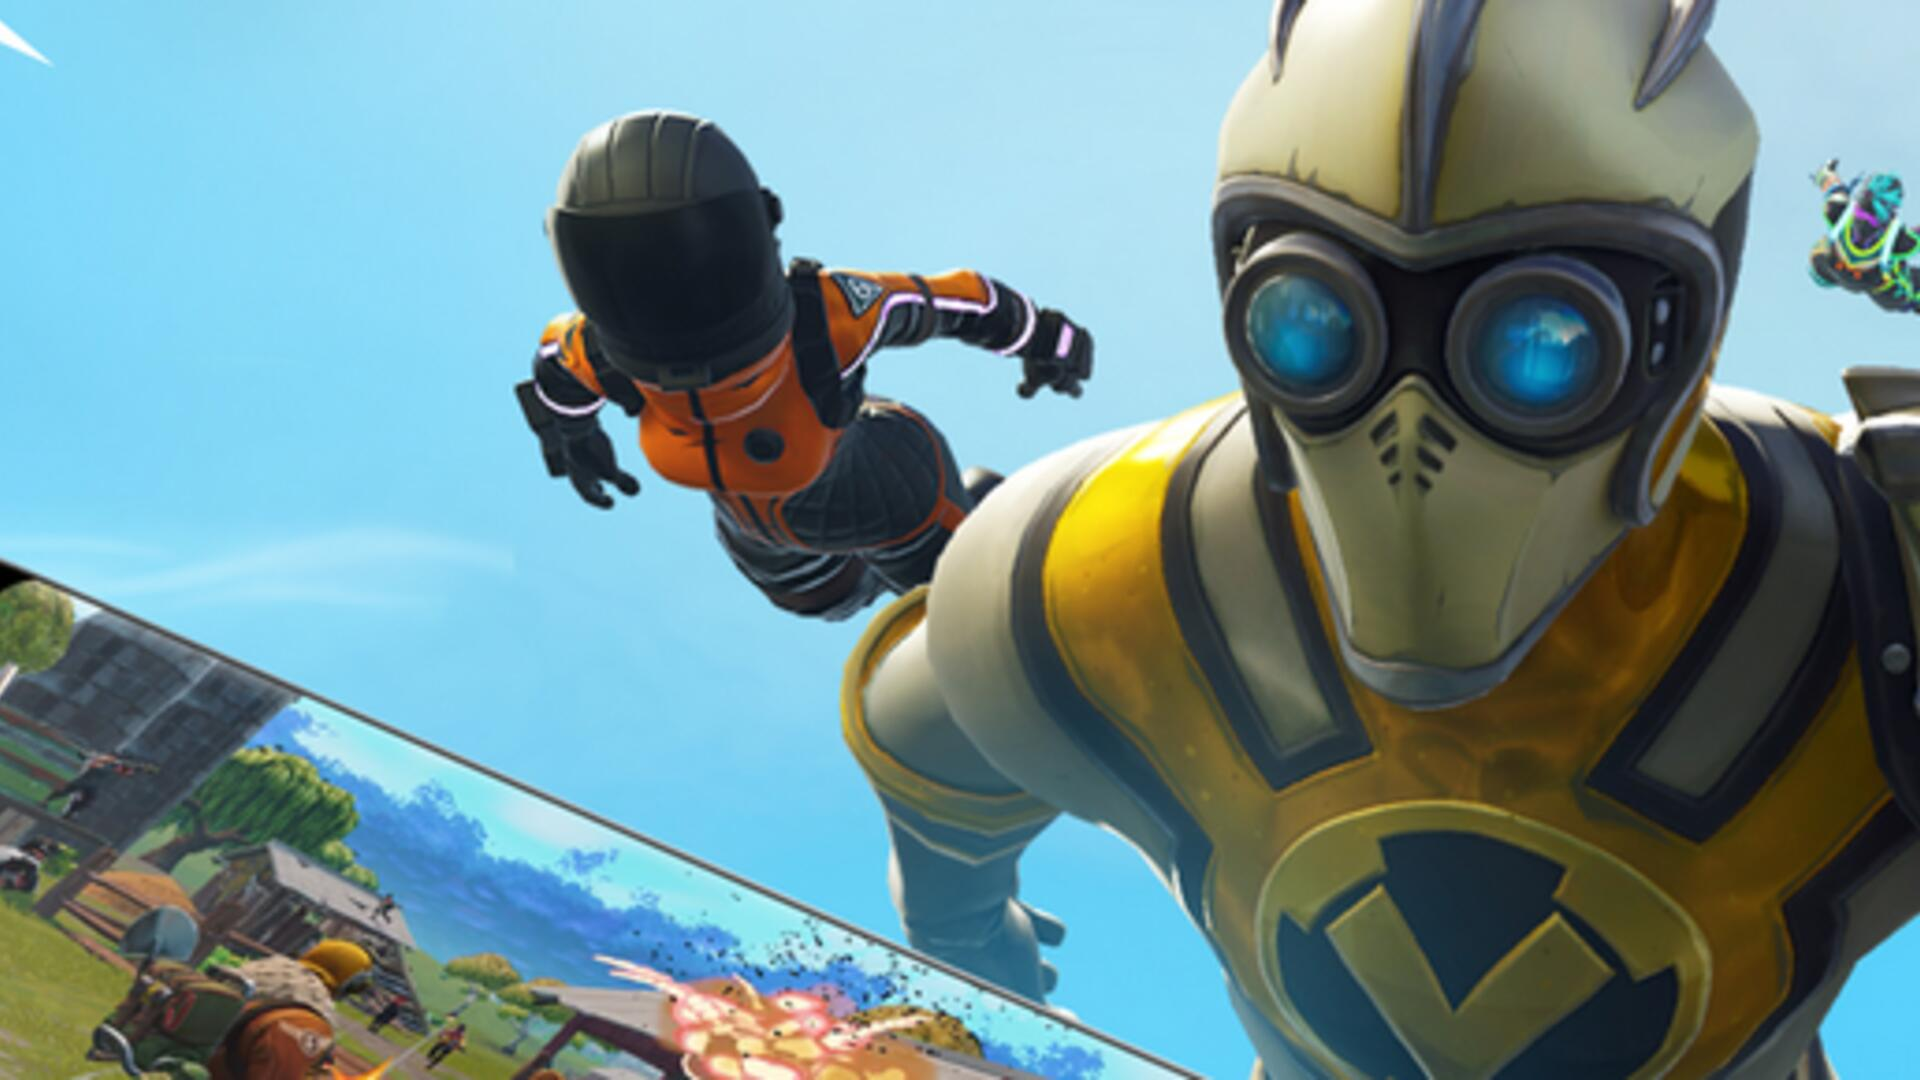 Epic and Google are Having a Row Over the Android Fortnite Launcher